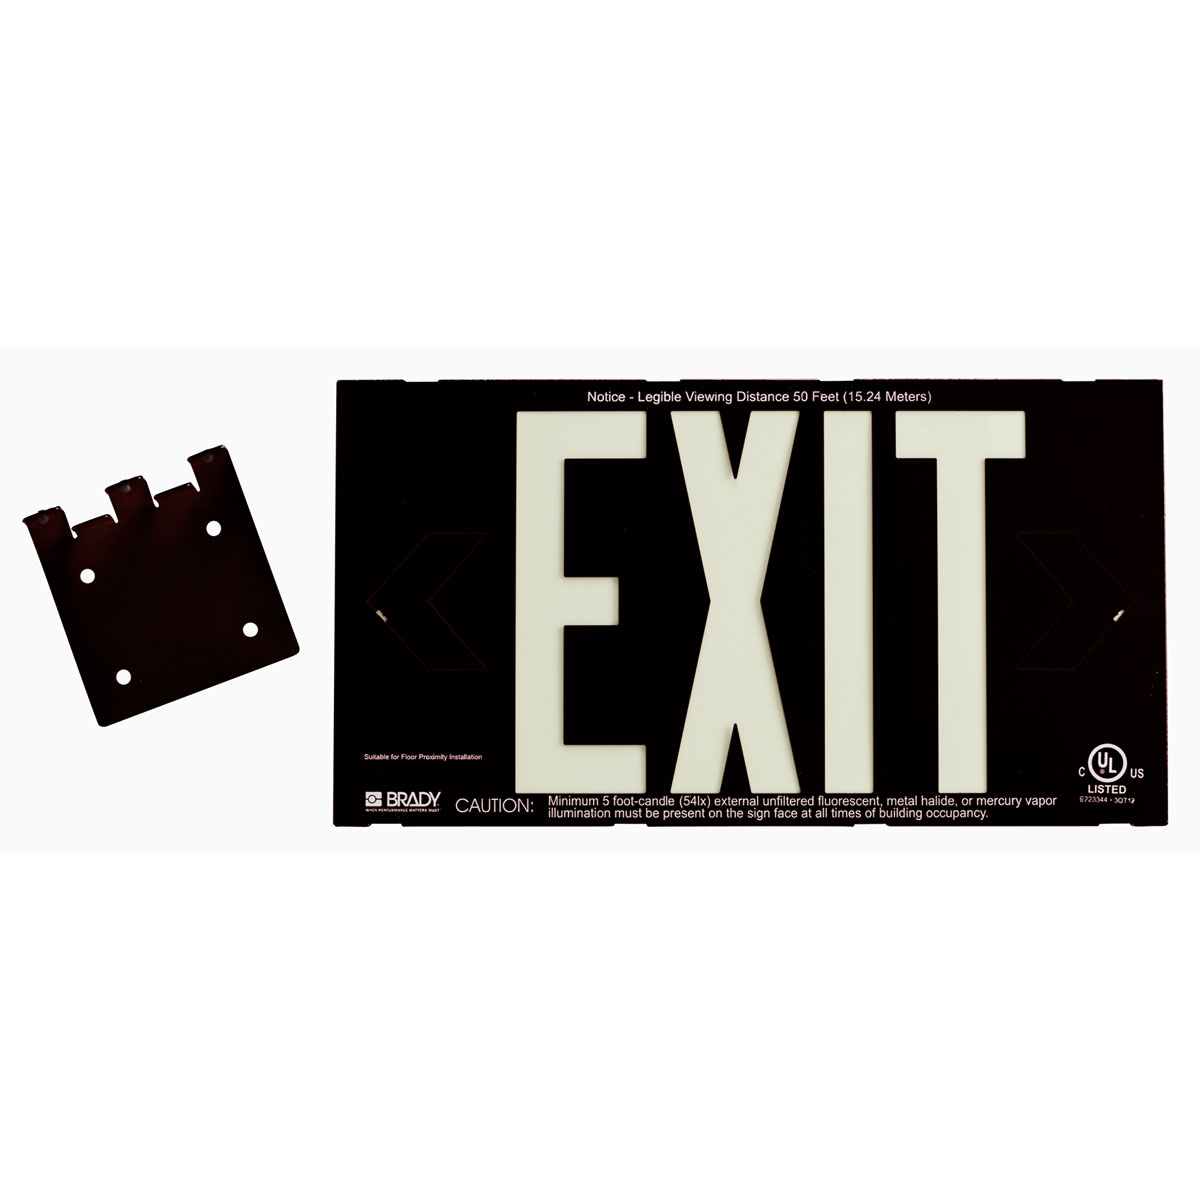 Brady® 38098B Rectangle Exit Sign, No Header, 8-1/4 in H x 15-1/4 in W, White on Black, B-355 Glow-In-The-Dark Plastic, Bracket Mounting